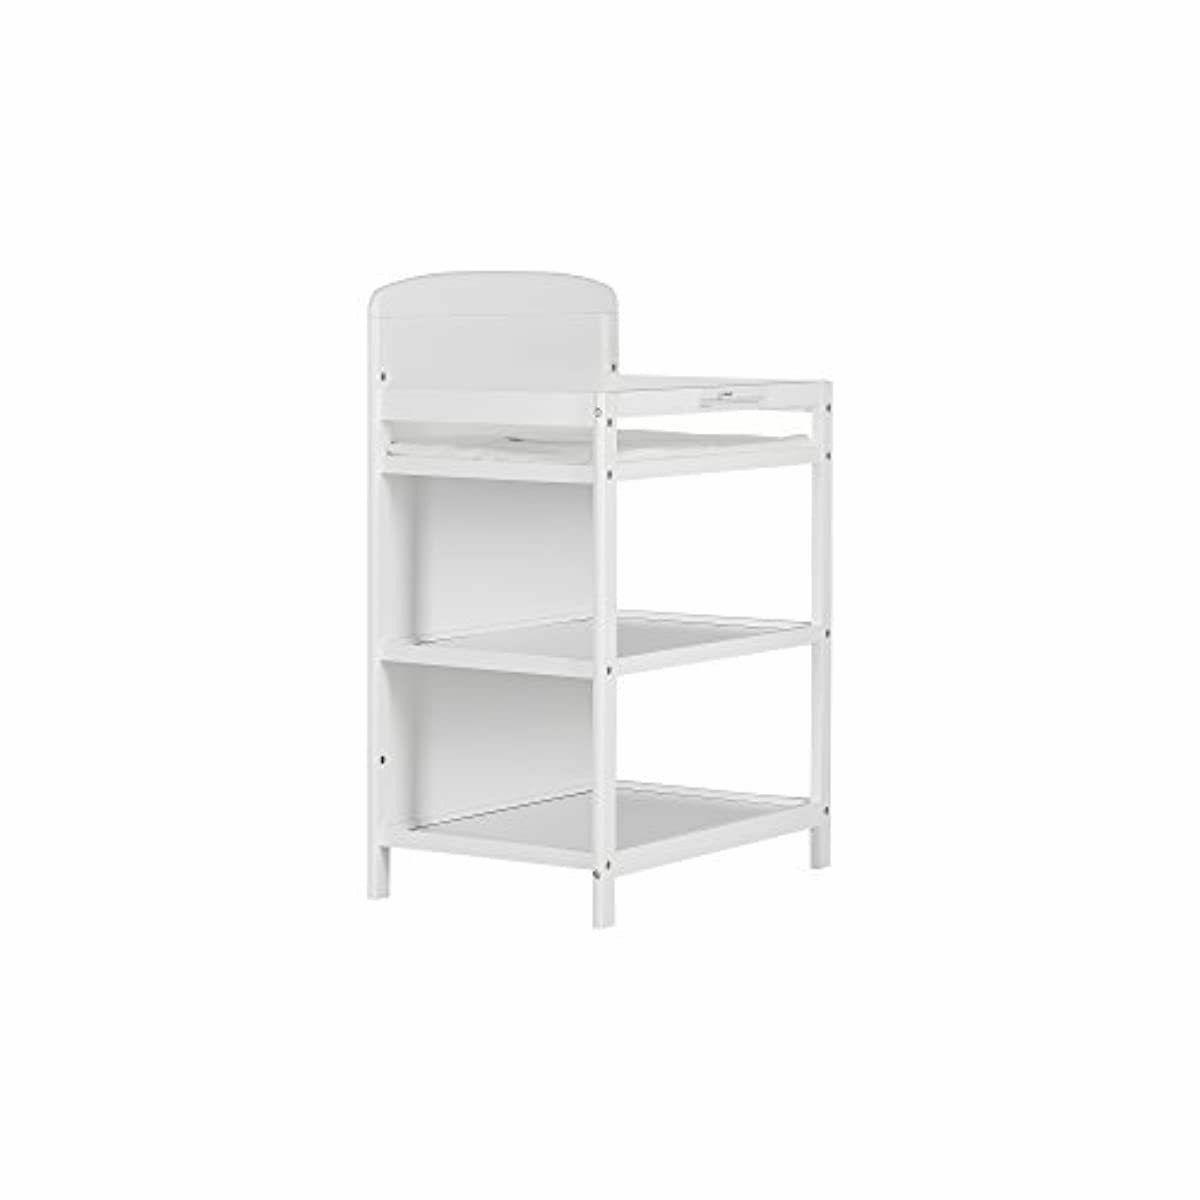 Dream On 4 Size Crib Changing Table